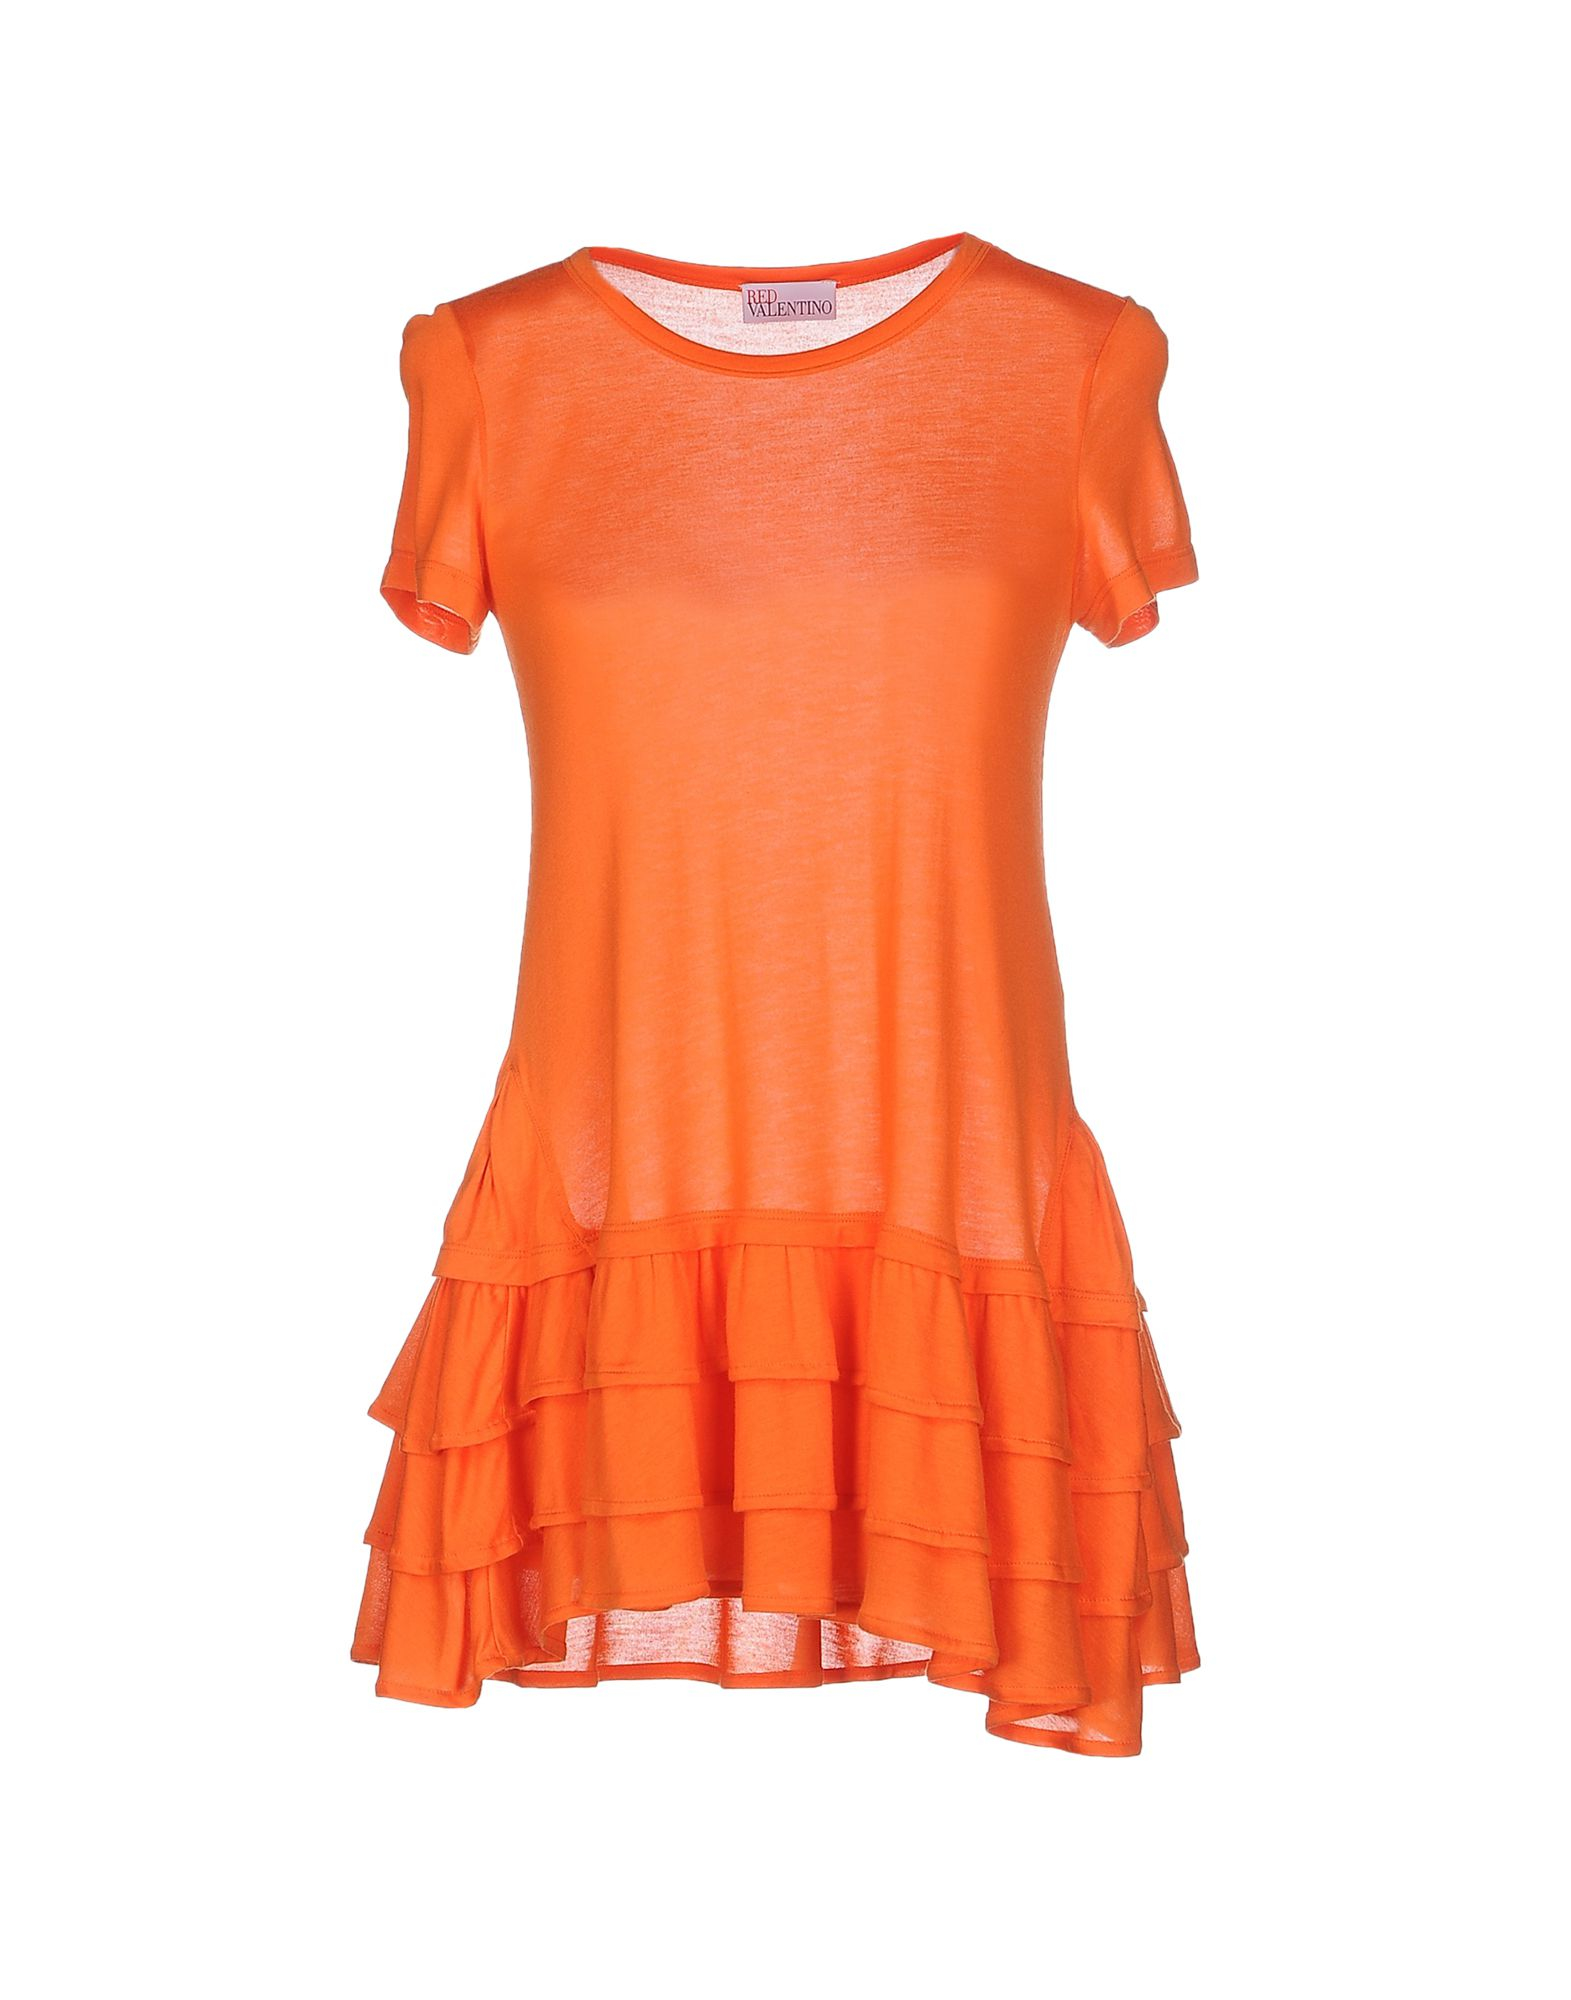 Lyst red valentino t shirt in orange for Red valentino t shirt